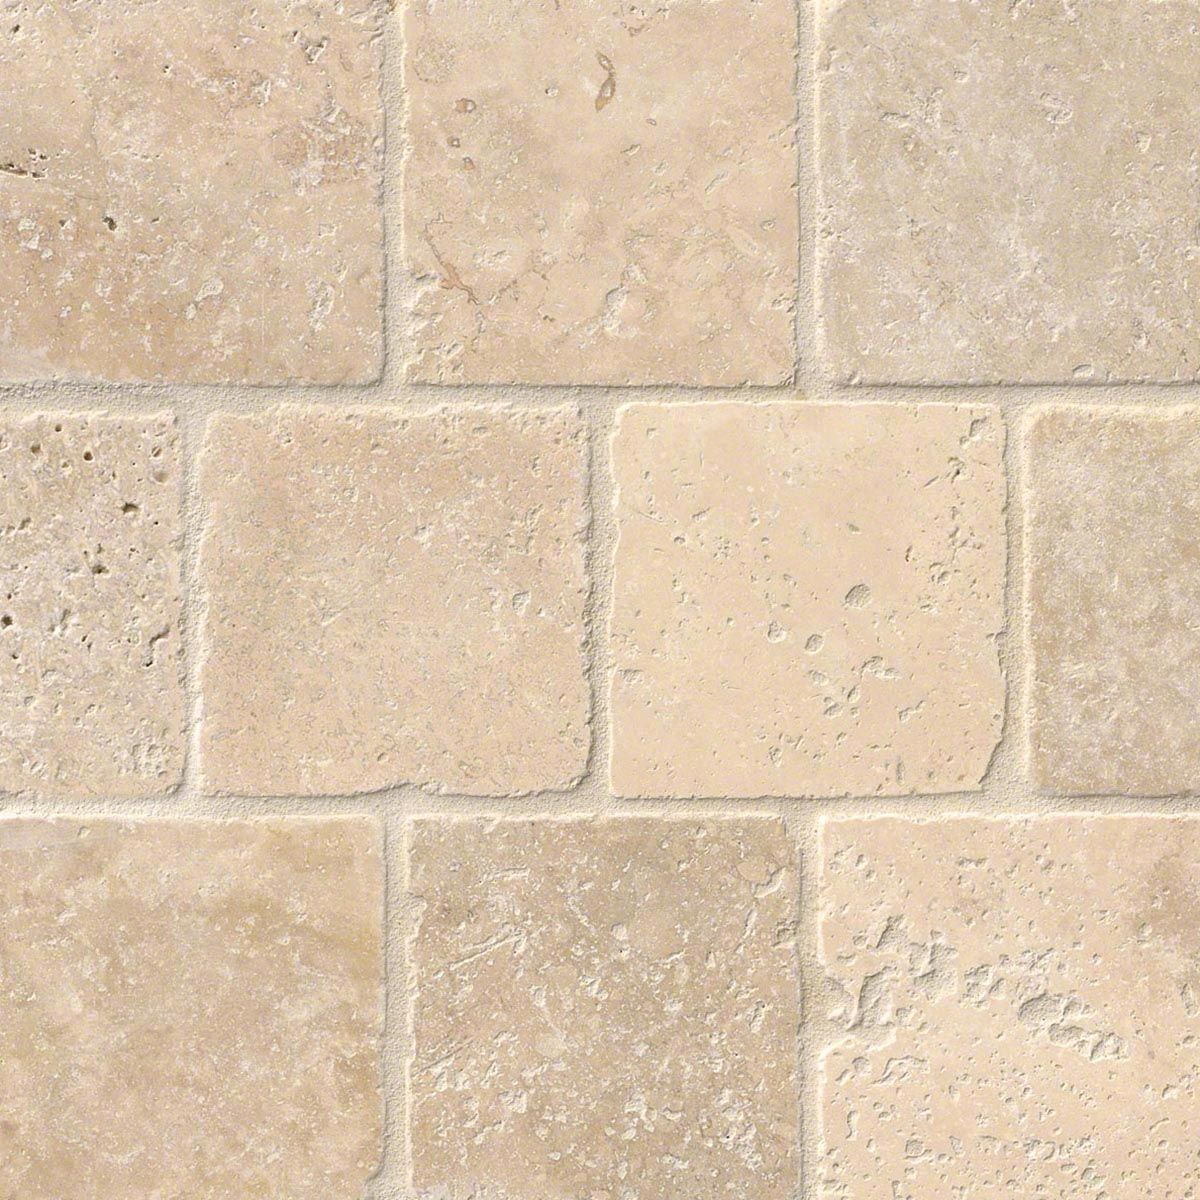 Tuscany classic 4x4 tumbled tile stone backsplash for Travertine accent tile